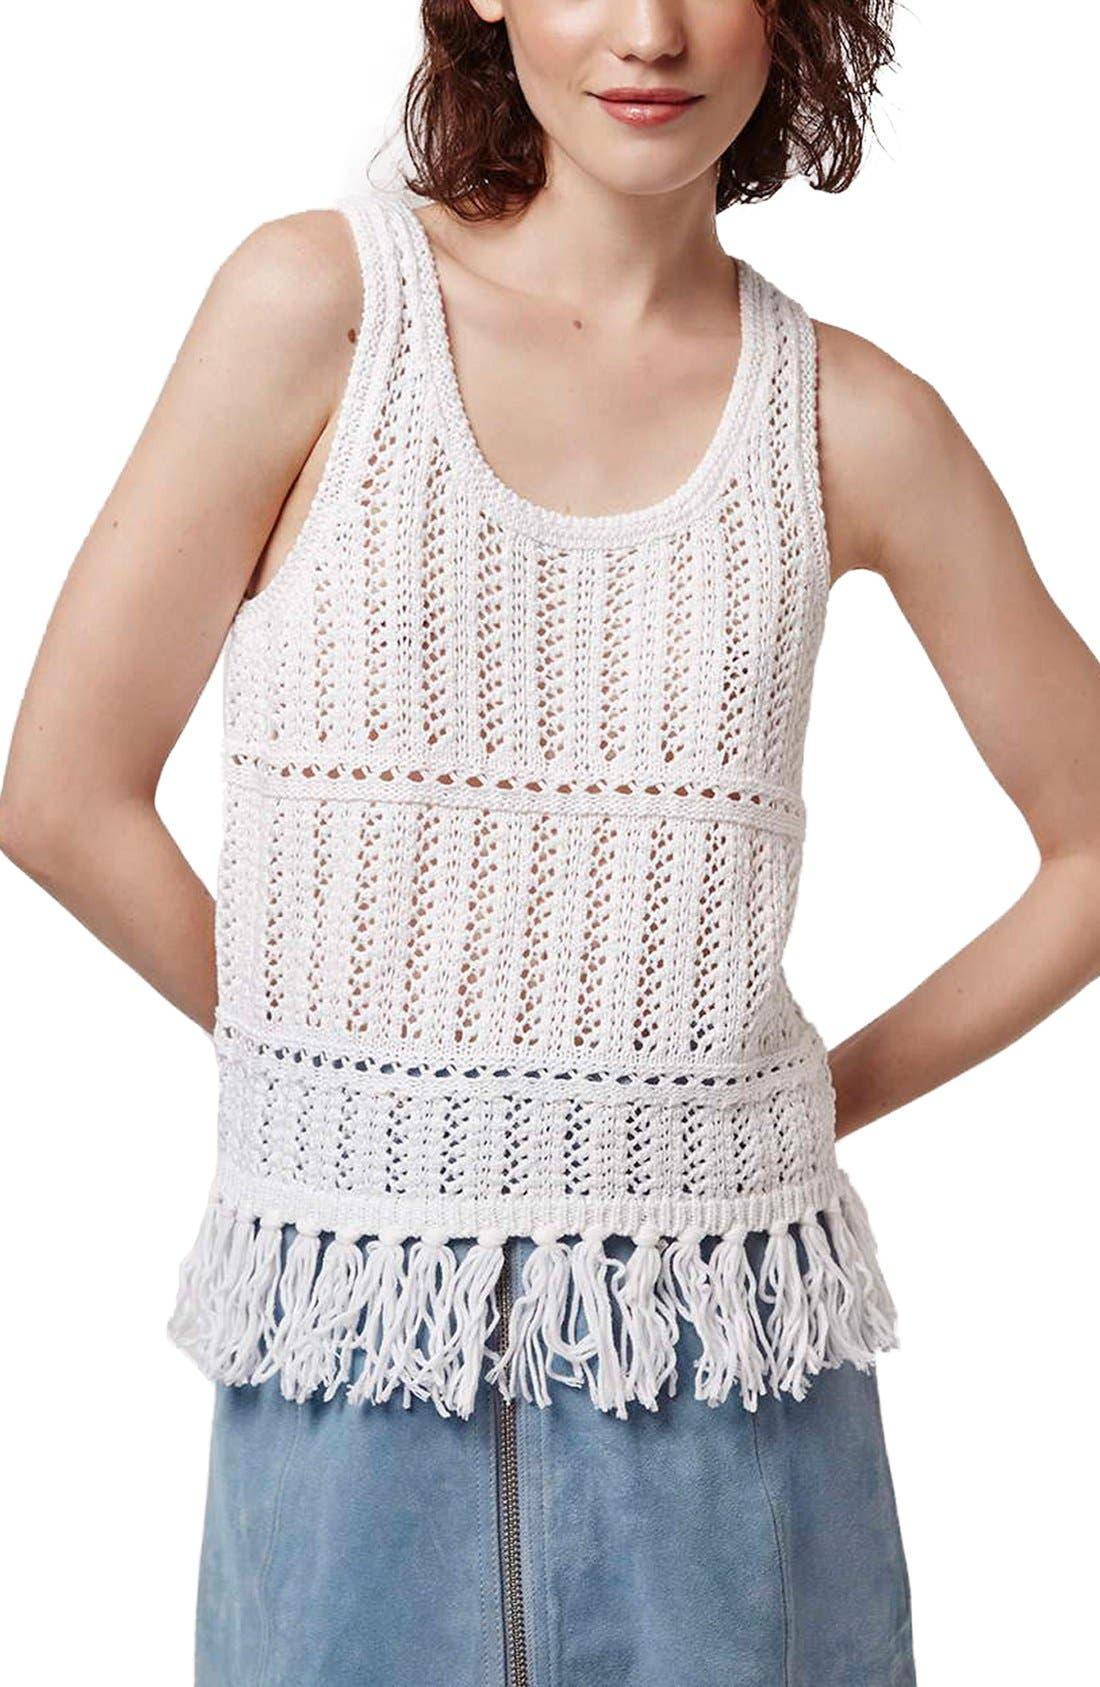 Alternate Image 1 Selected - Topshop Fringe Crochet Tank